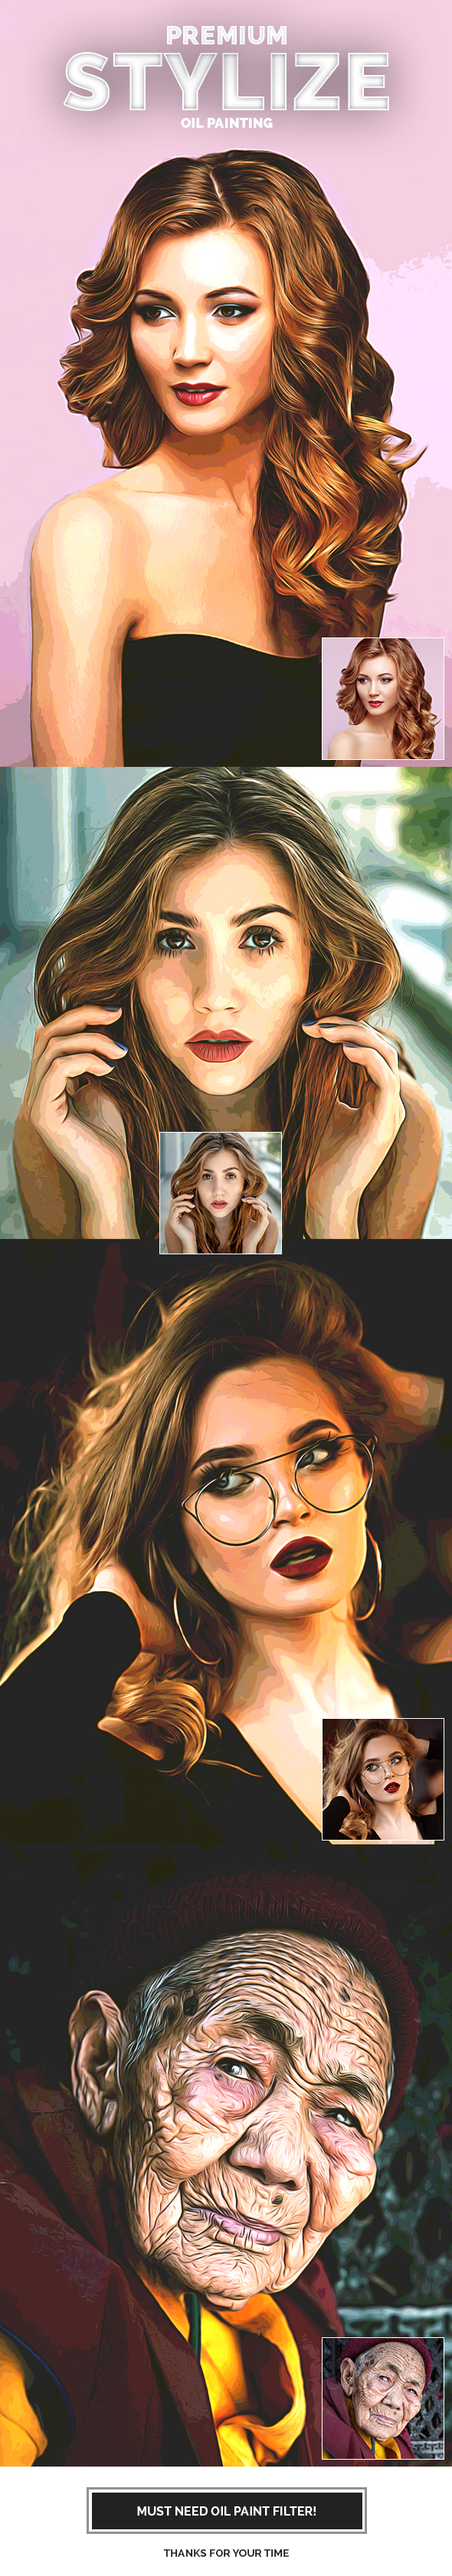 Premium Stylize Oil Painting - Photo Effects Actions